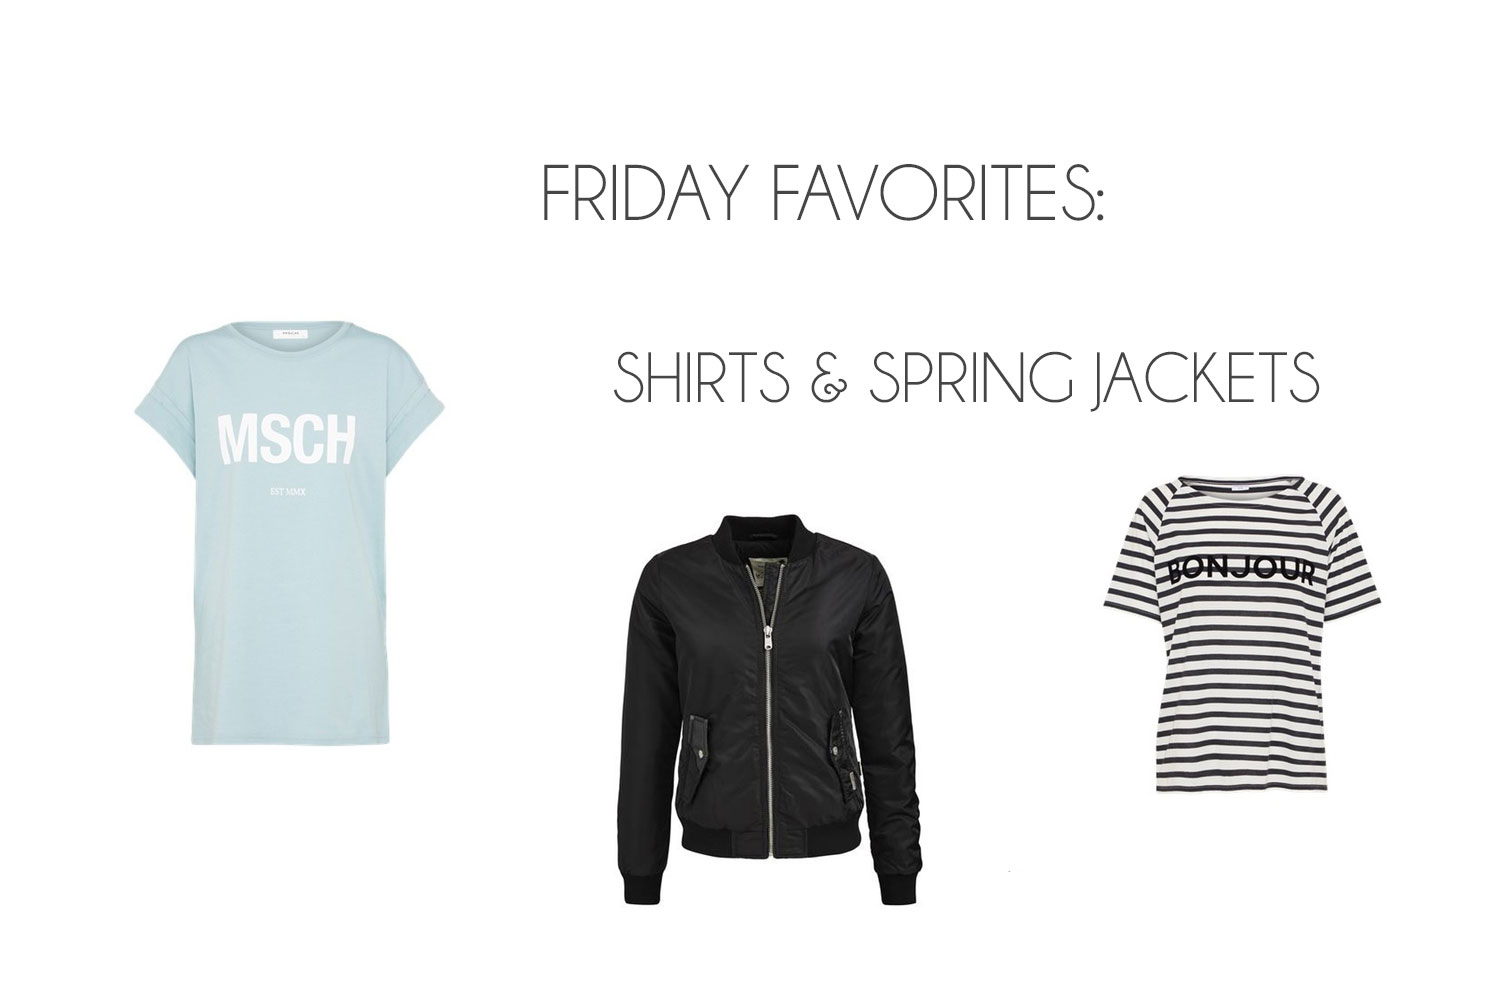 Friday Favorites: Shirts & Spring Jackets - Friday Favorites 3